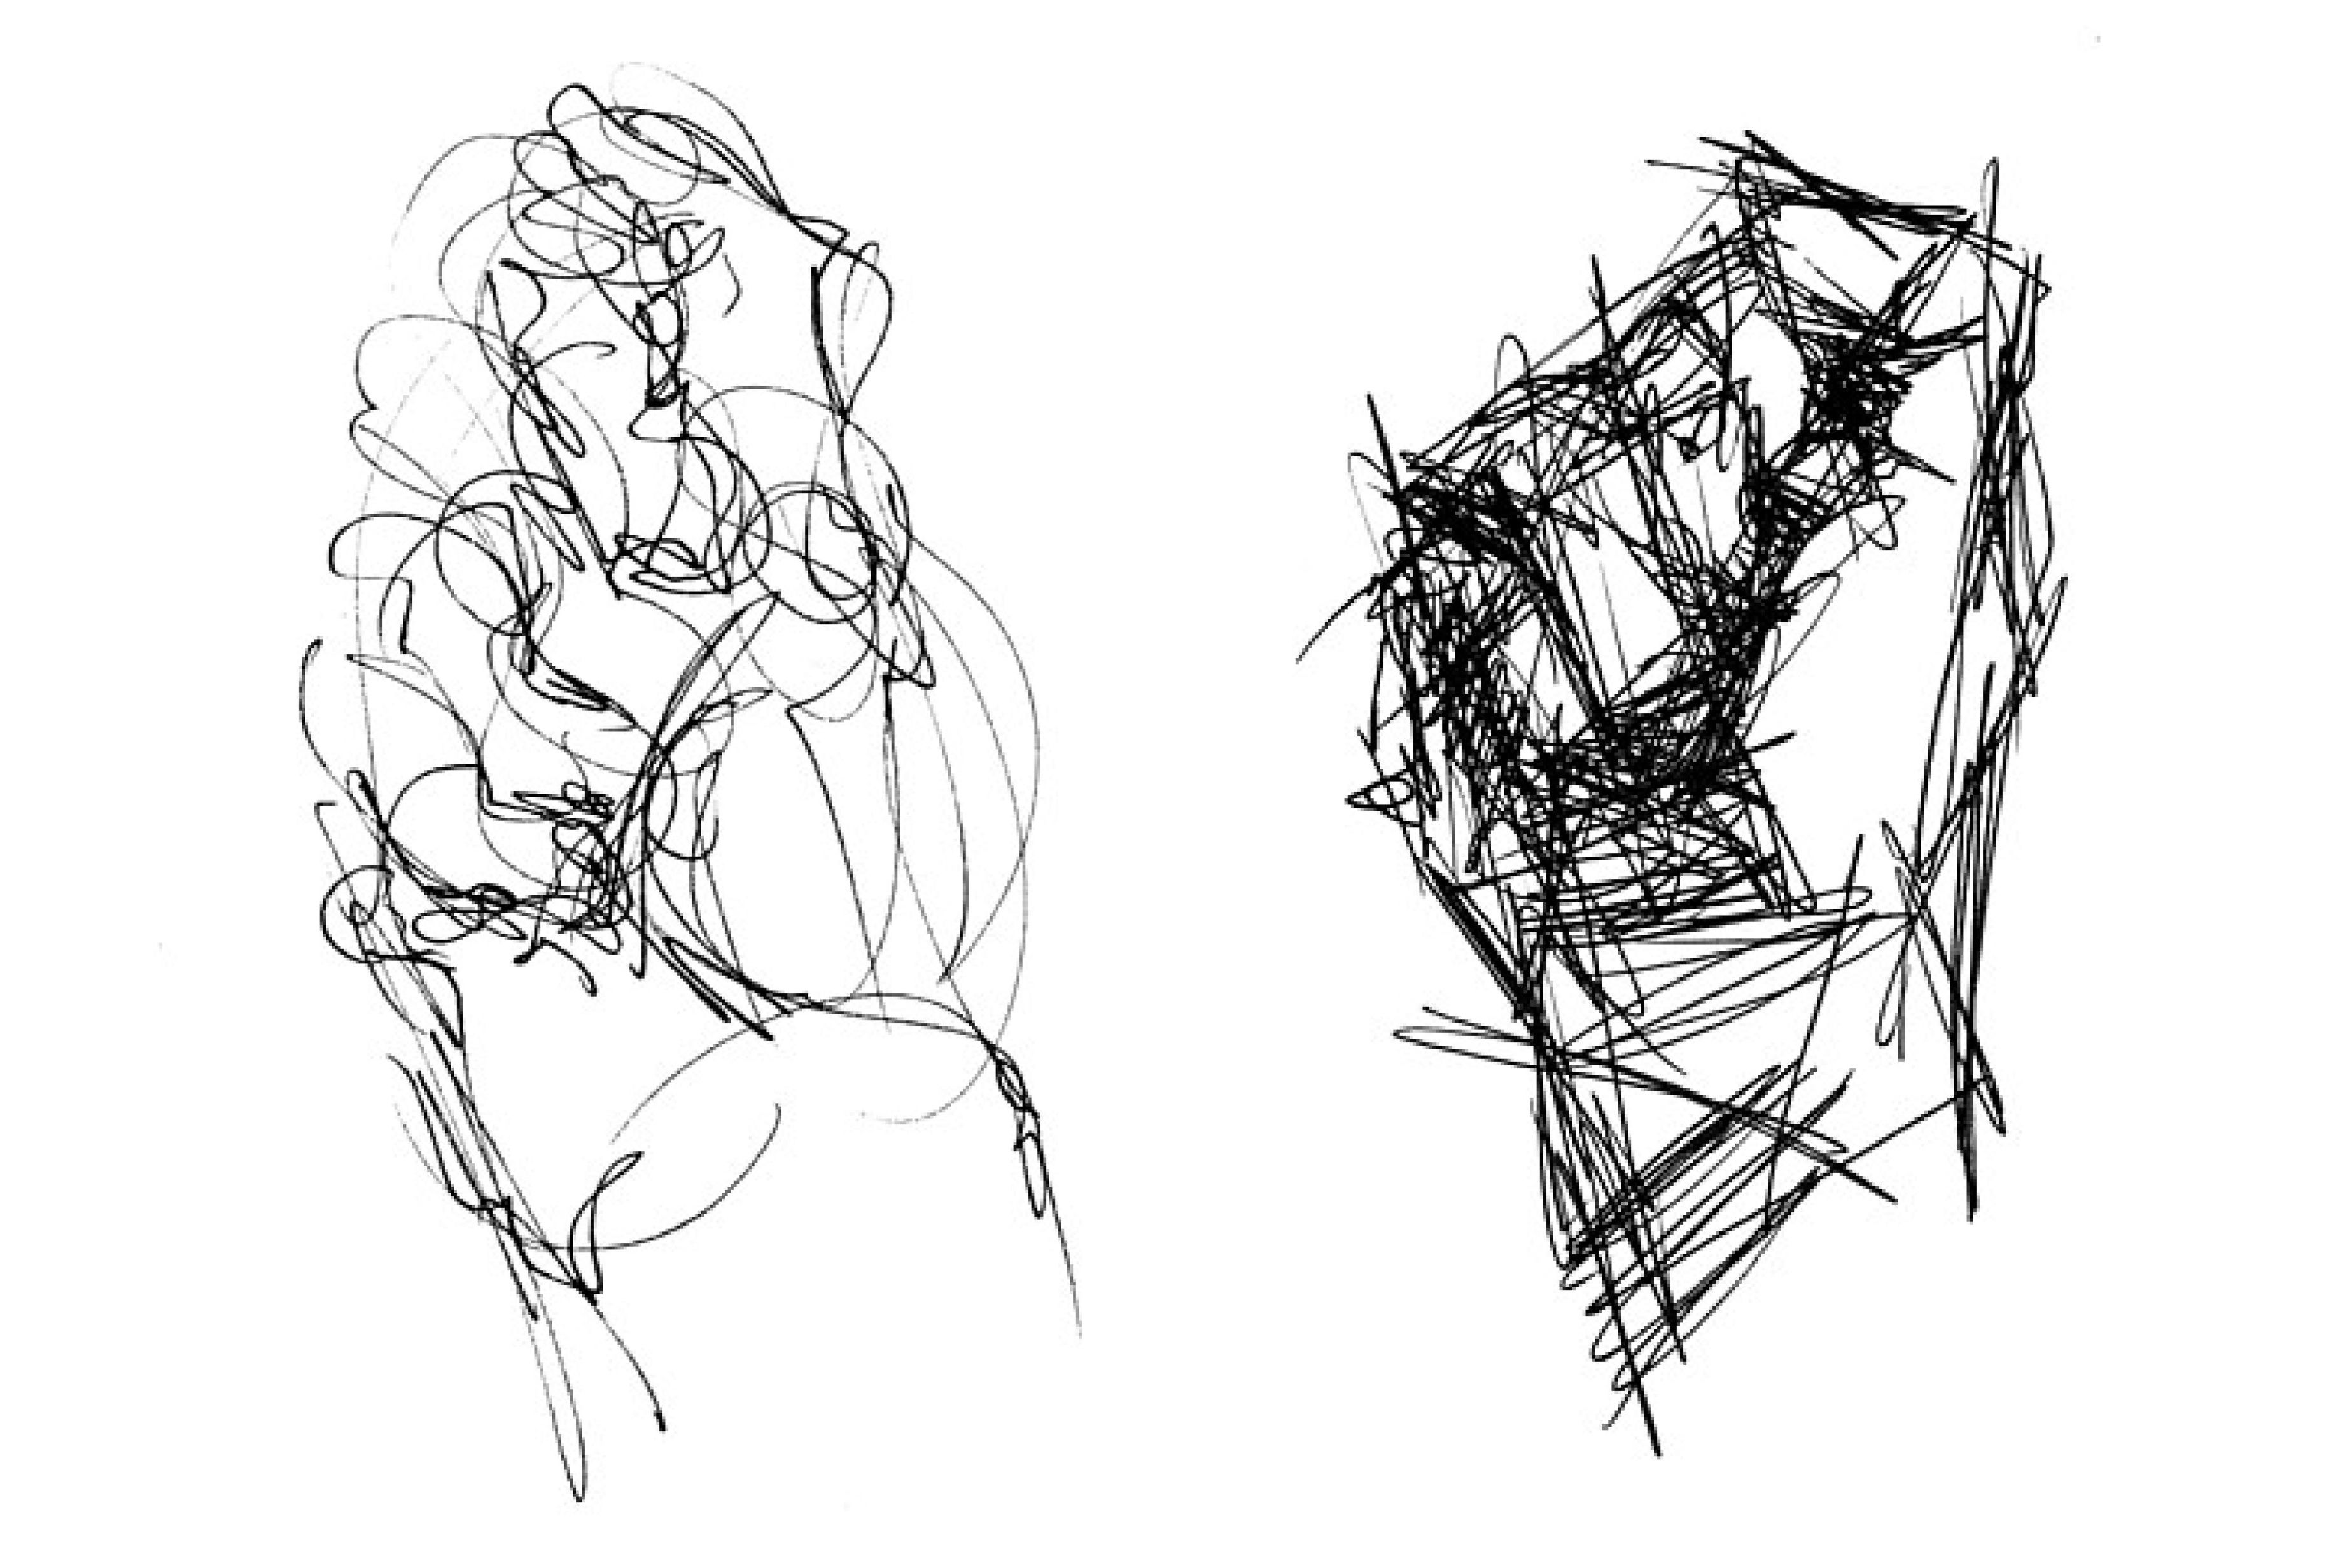 What Does It Mean to Do a Gestural Drawing?